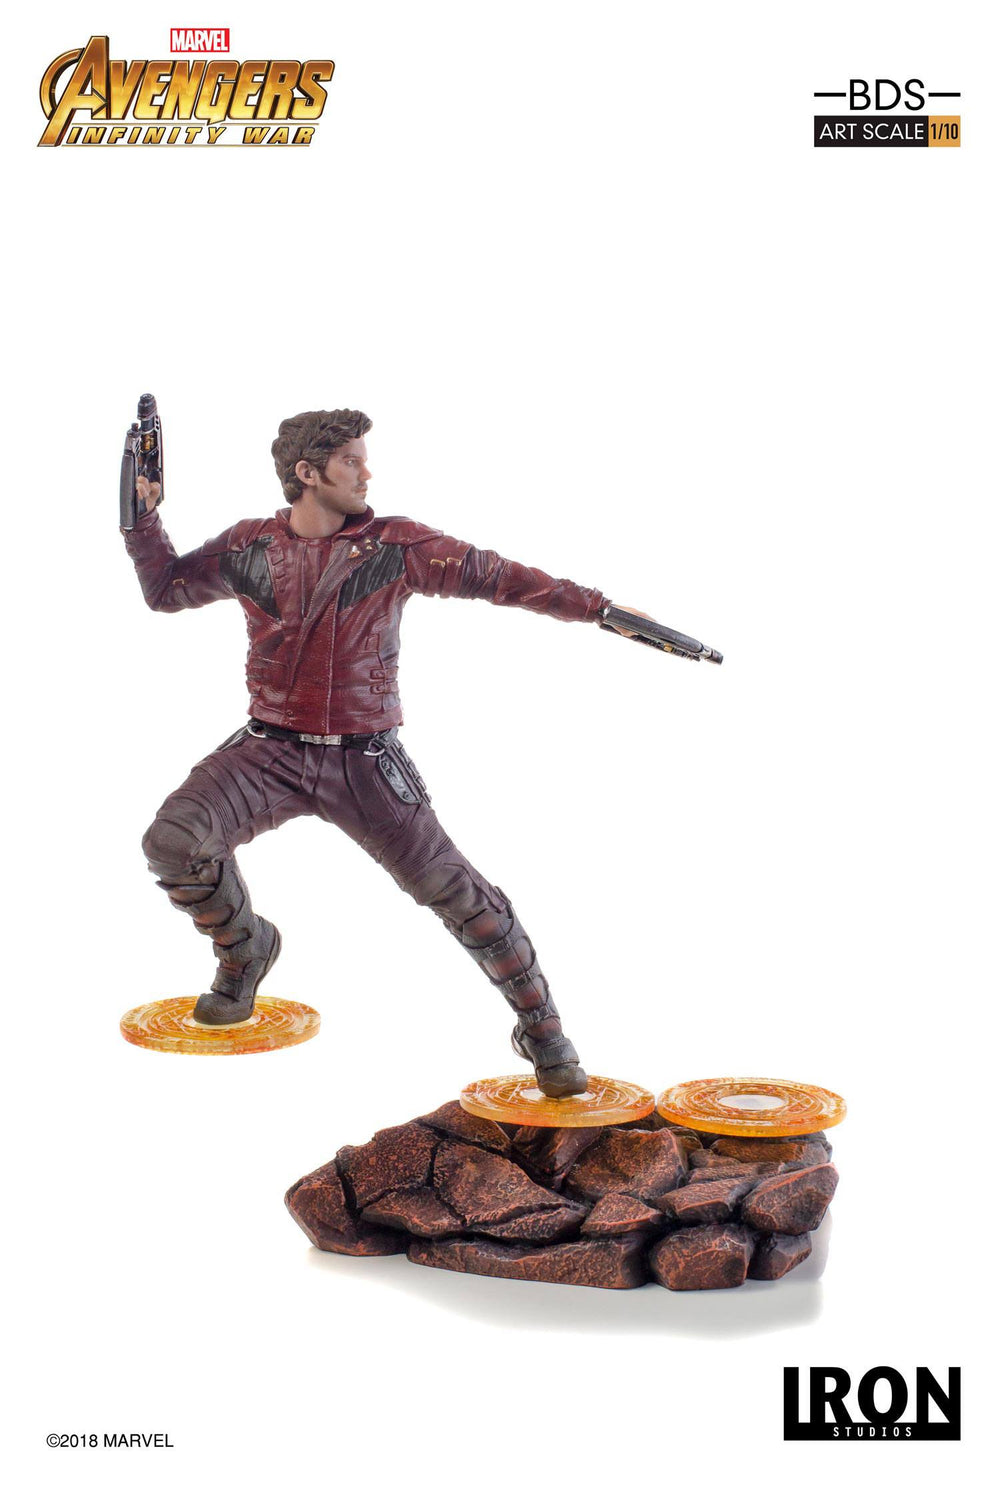 Iron Studios Avengers: Infinity War Star-Lord Battle Diorama Series 1/10 Statue